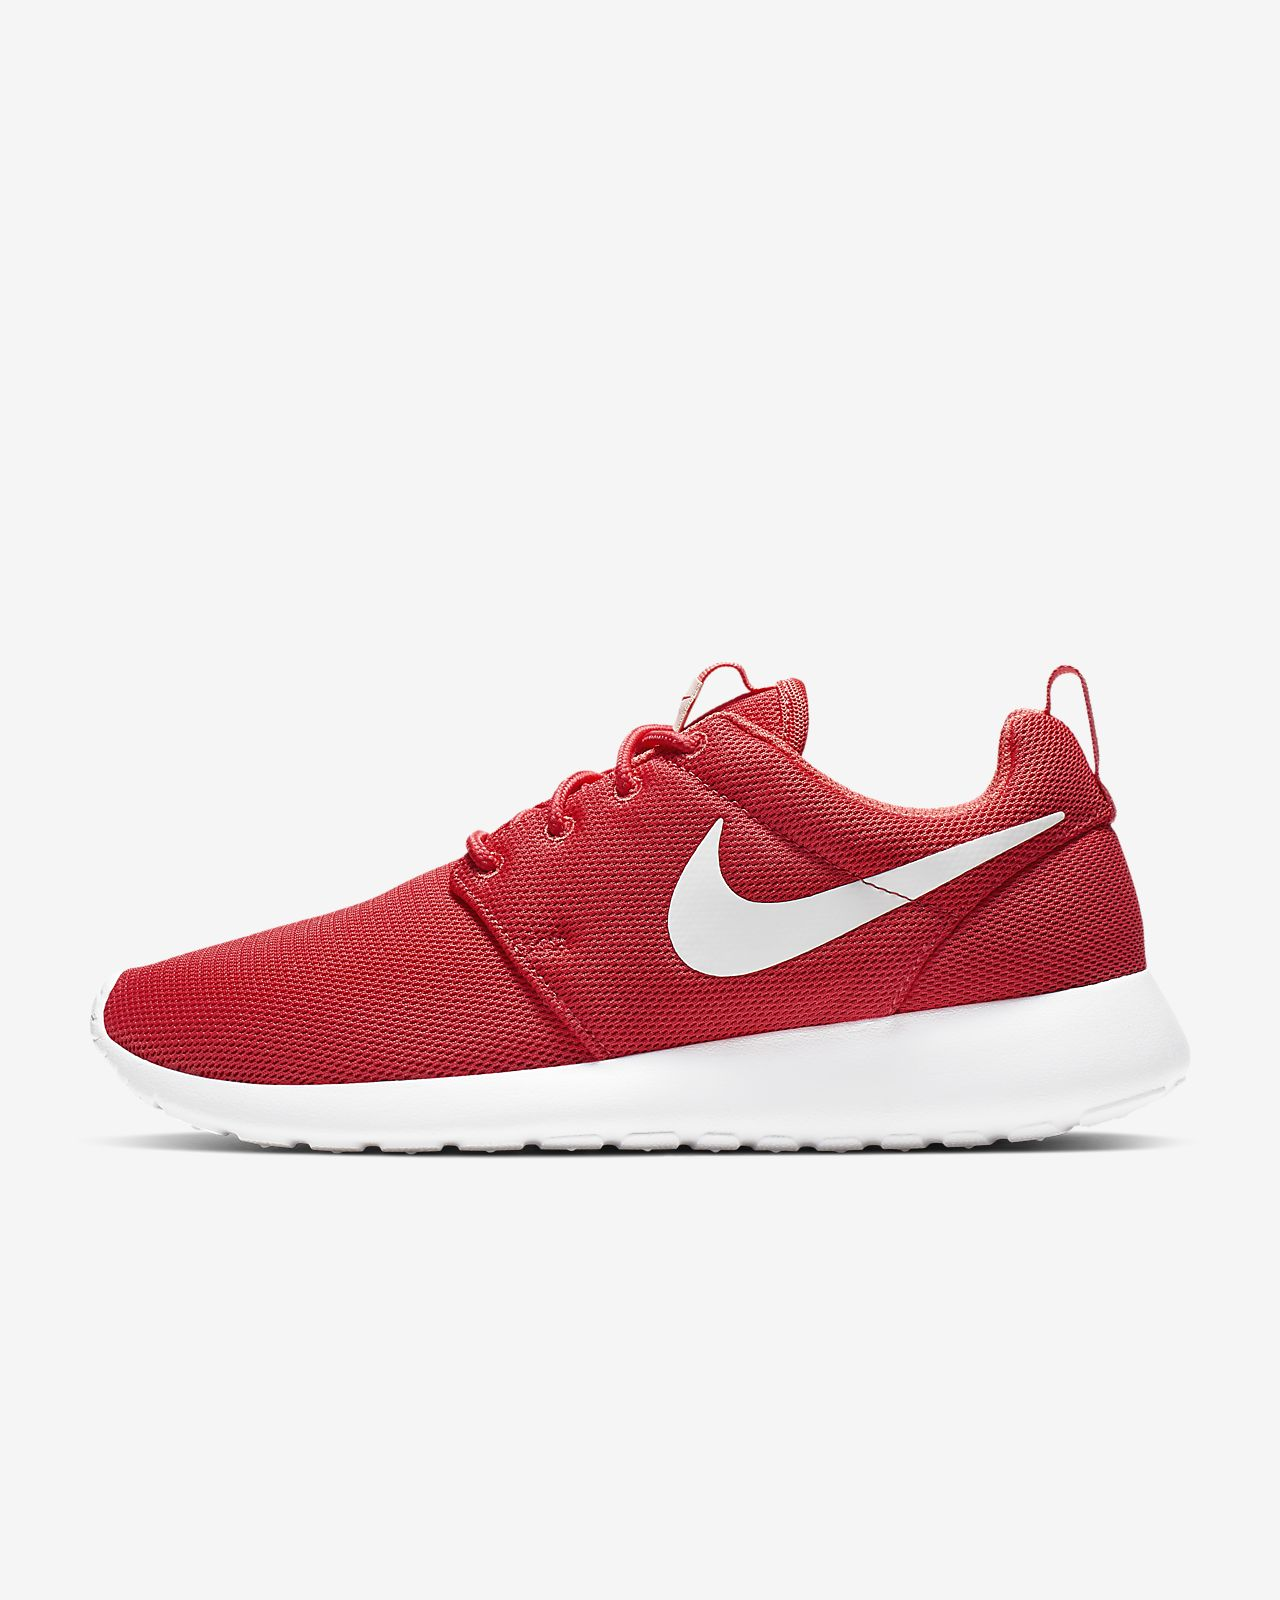 pretty nice bfb01 8d606 Nike Roshe One Women s Shoe. Nike.com